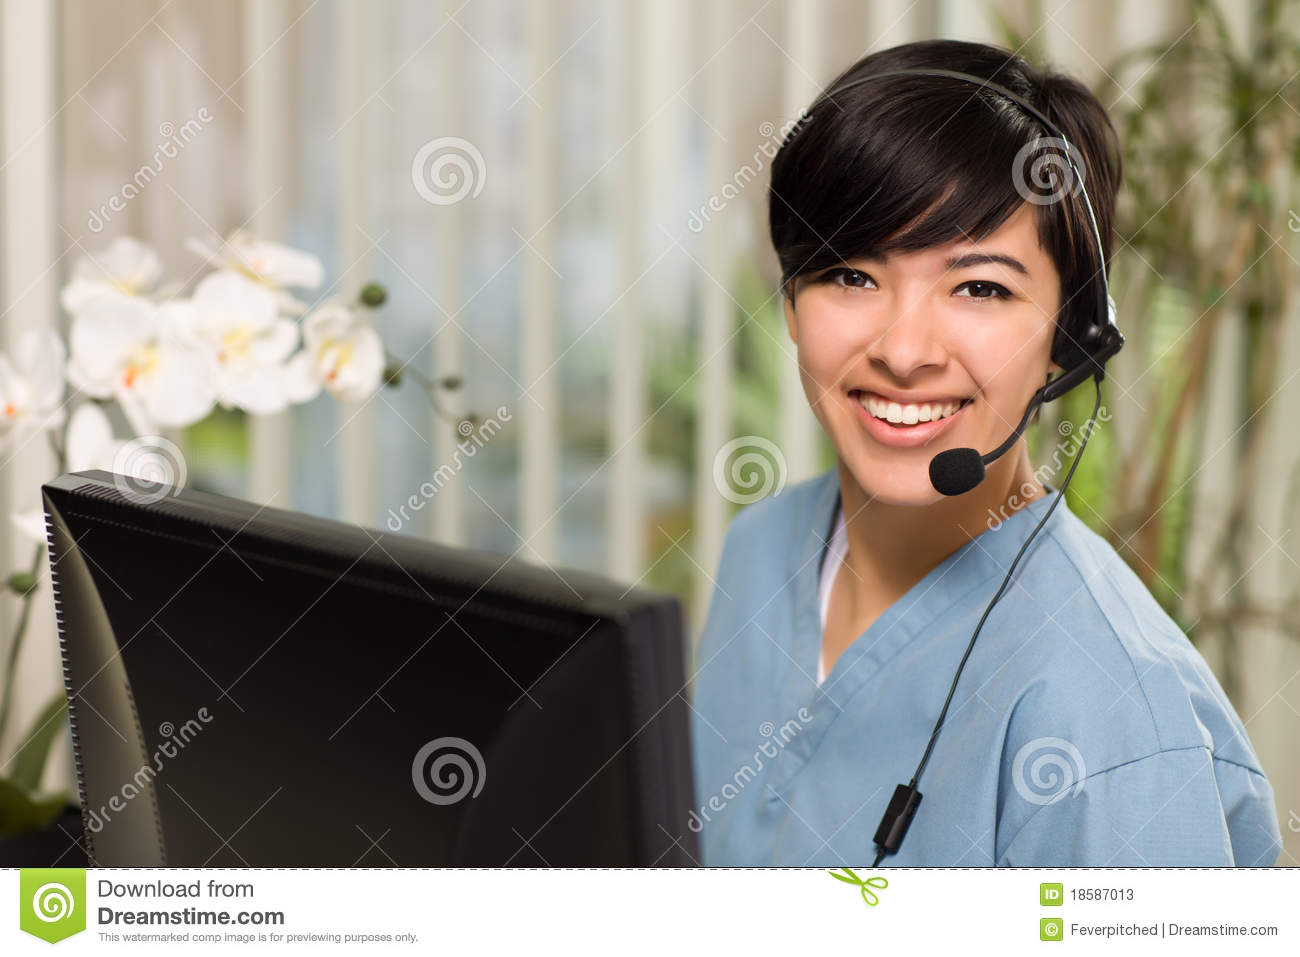 Multi-ethnic Young Woman With Headset and Scrubs